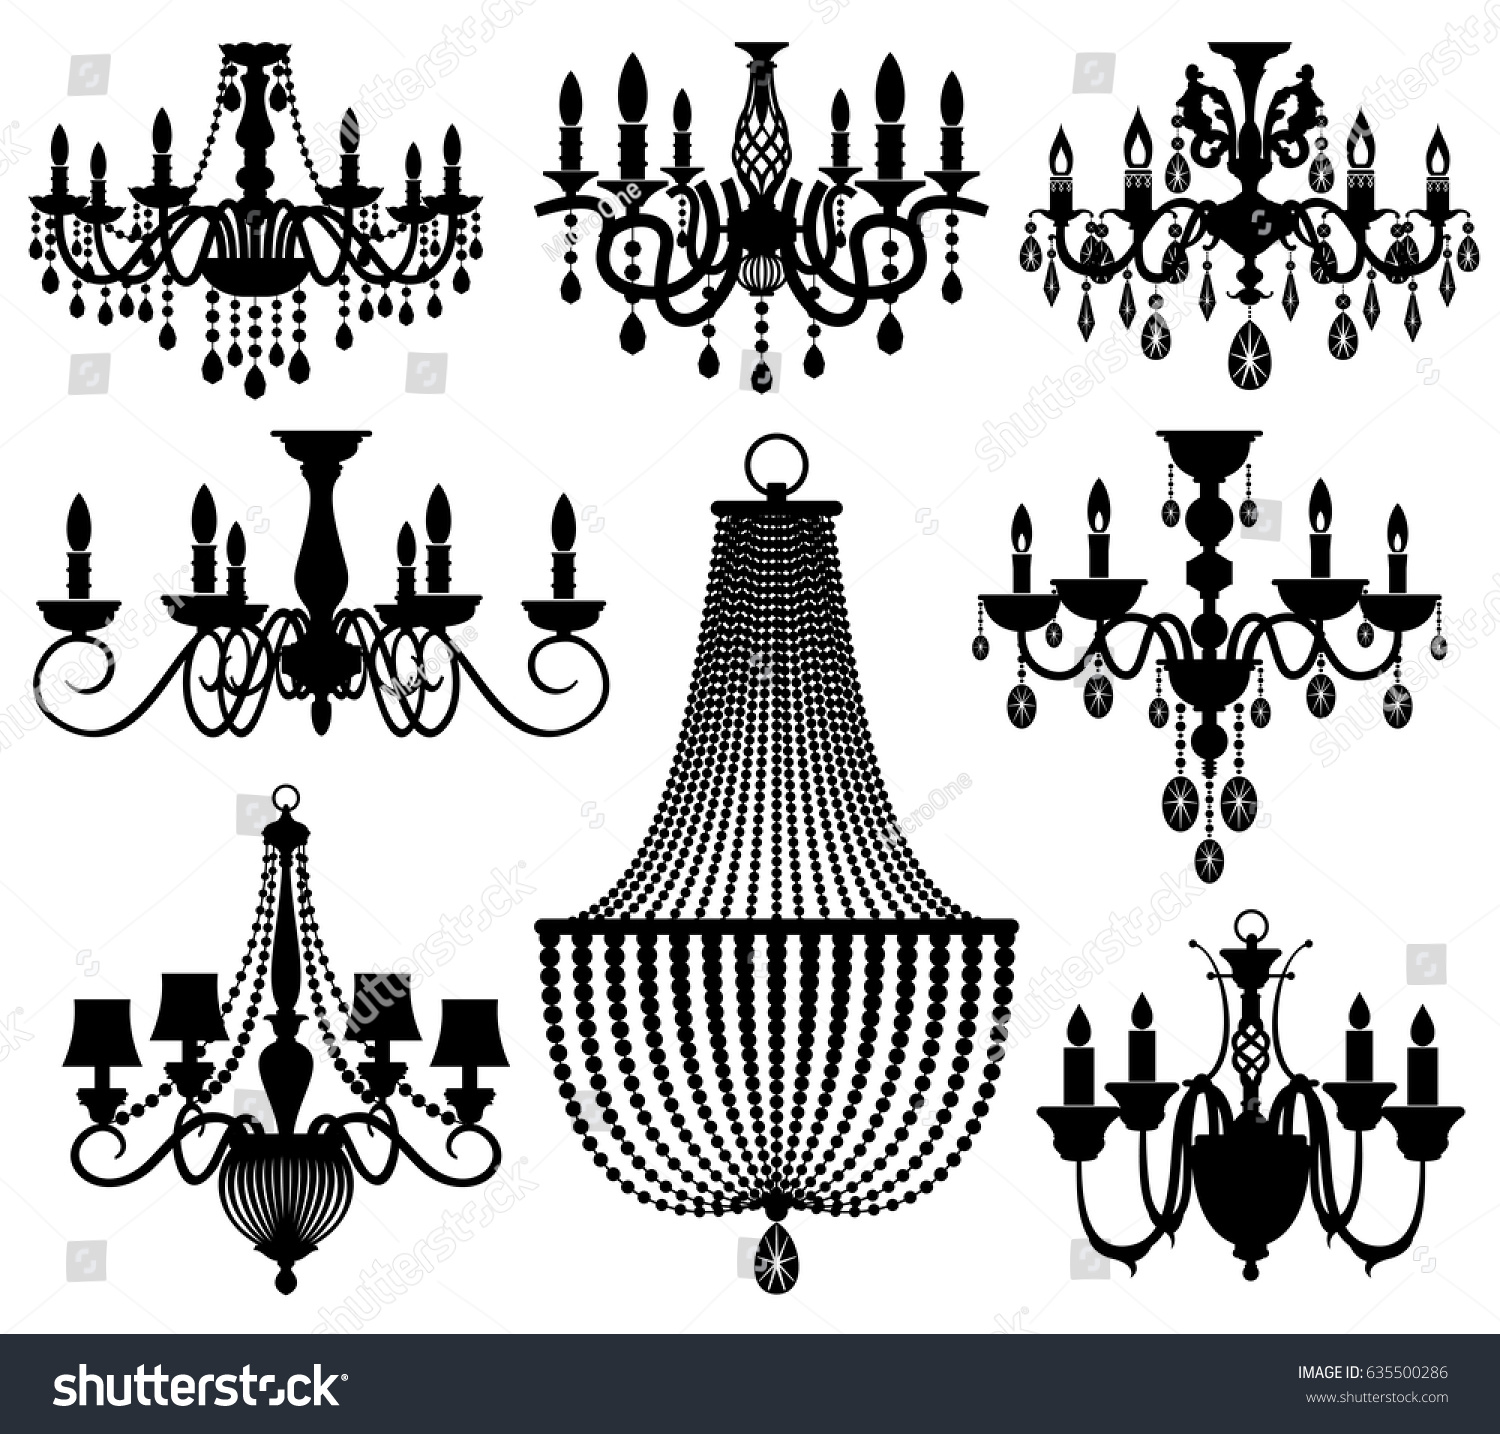 Vintage crystal chandeliers vector silhouettes isolated stock vintage crystal chandeliers vector silhouettes isolated stock vector 635500286 shutterstock arubaitofo Image collections